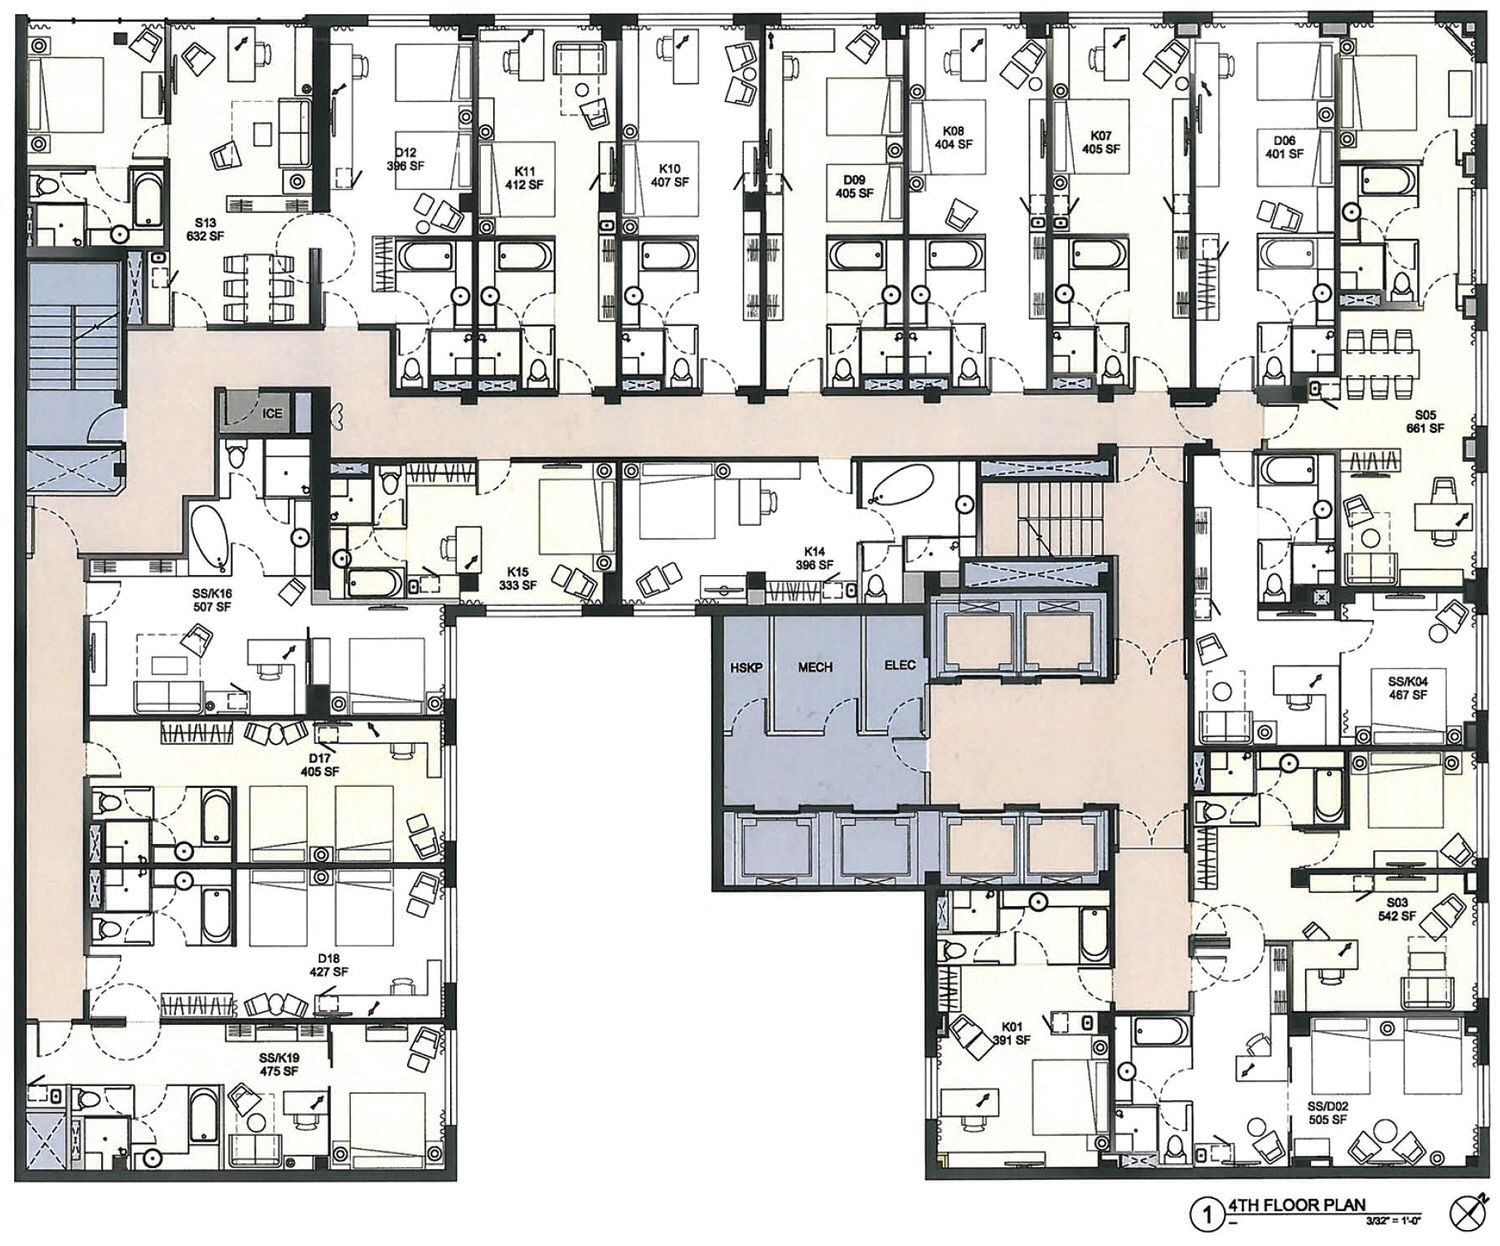 Jw Marriott Hotel Houston Hotel Plan Hotel Design Architecture Hotel Floor Plan